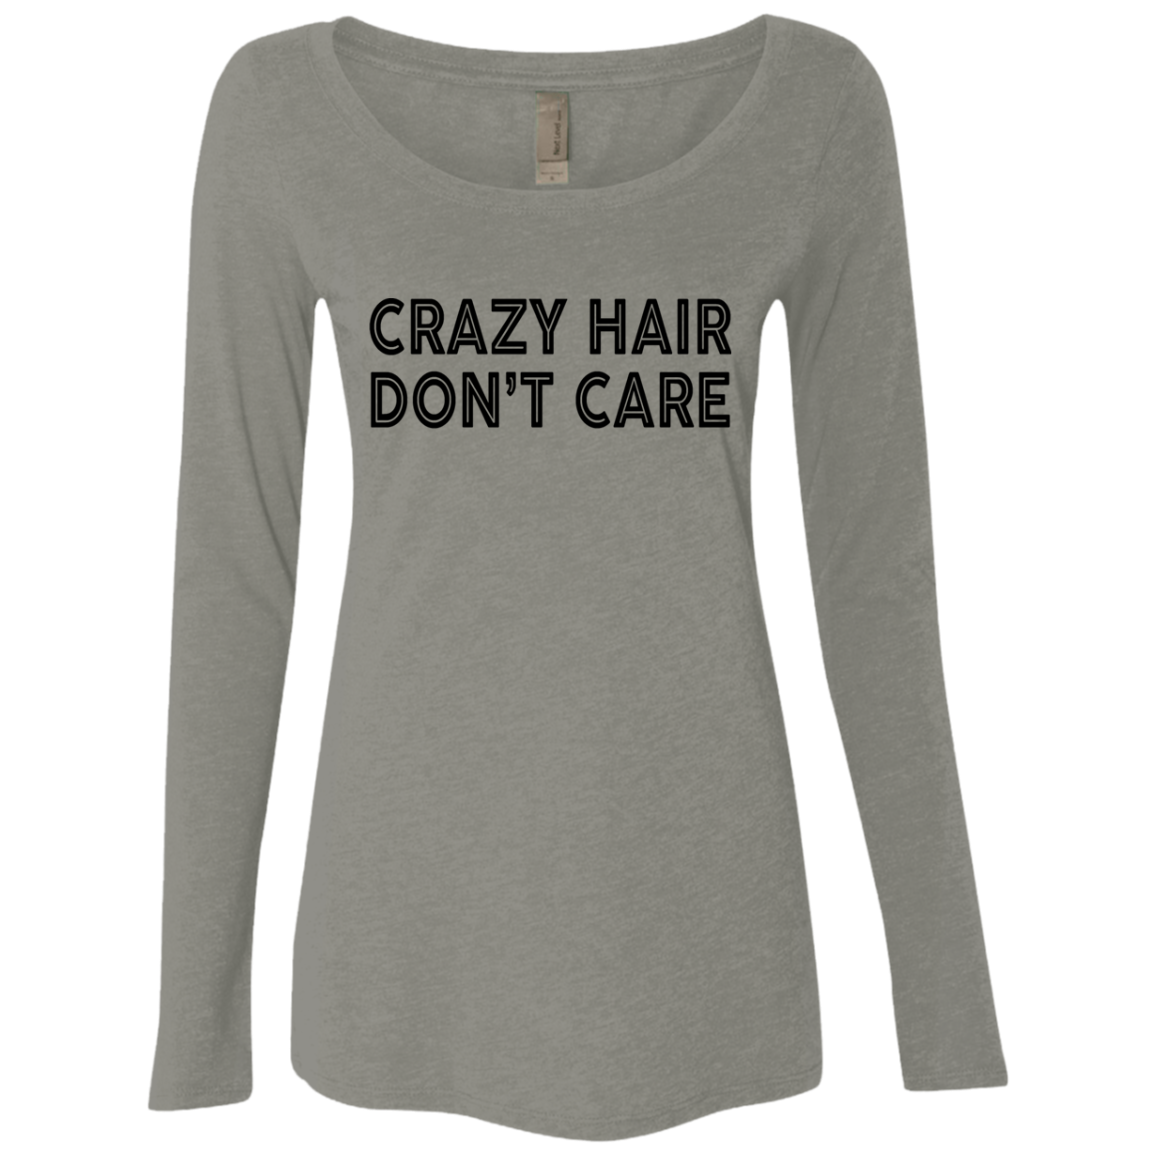 Crazy Hair Don't Care Women's Long Sleeve Tee